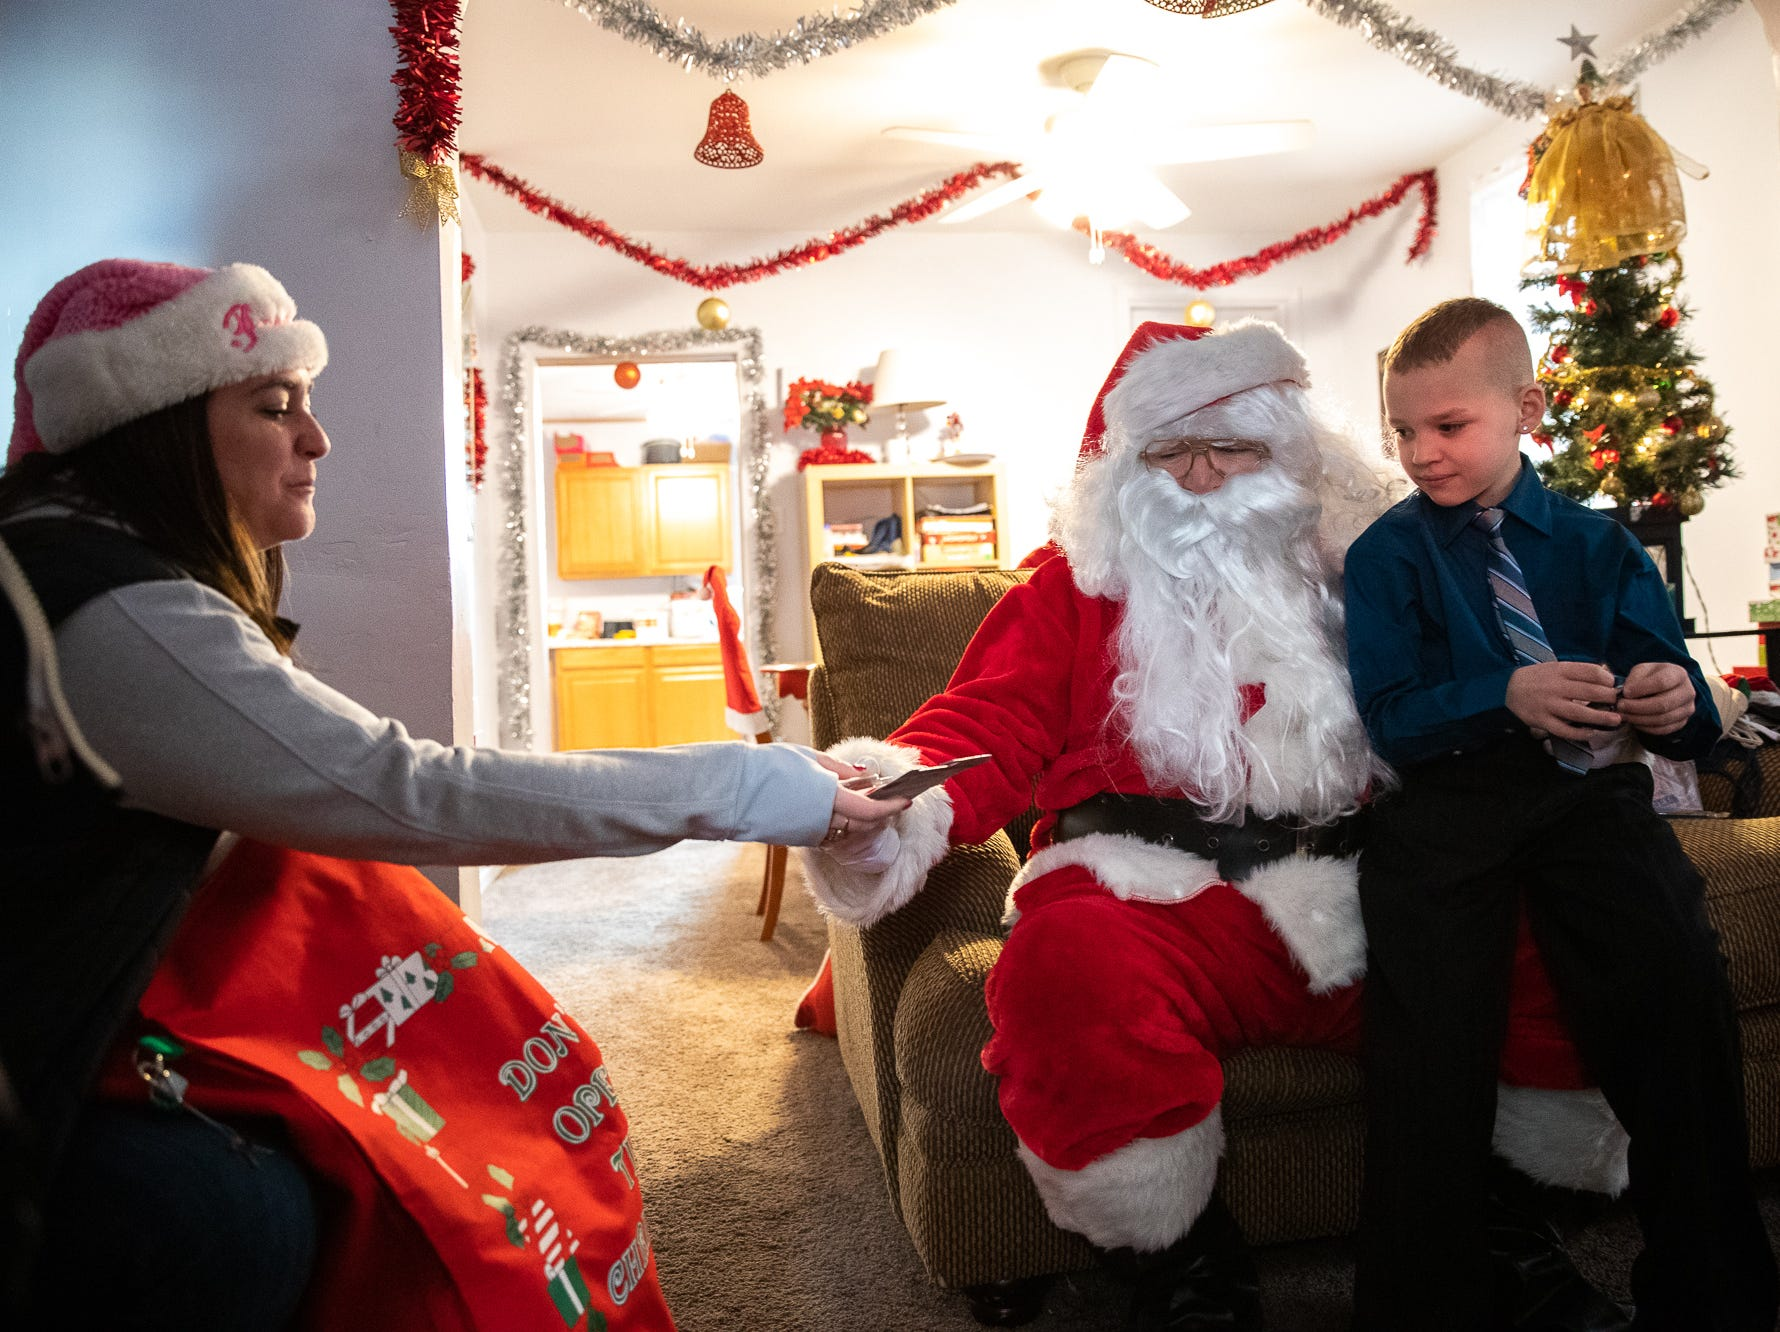 Isaiah, 8, gets presents from Santa, played by firefighter Wayne Reid, during the S.A.V.E.S Project Santa, Saturday, Dec. 22, 2018, in McSherrystown Borough. The S.A.V.E.S Project Santa donated food, toys, and clothing to 12 local families in need.